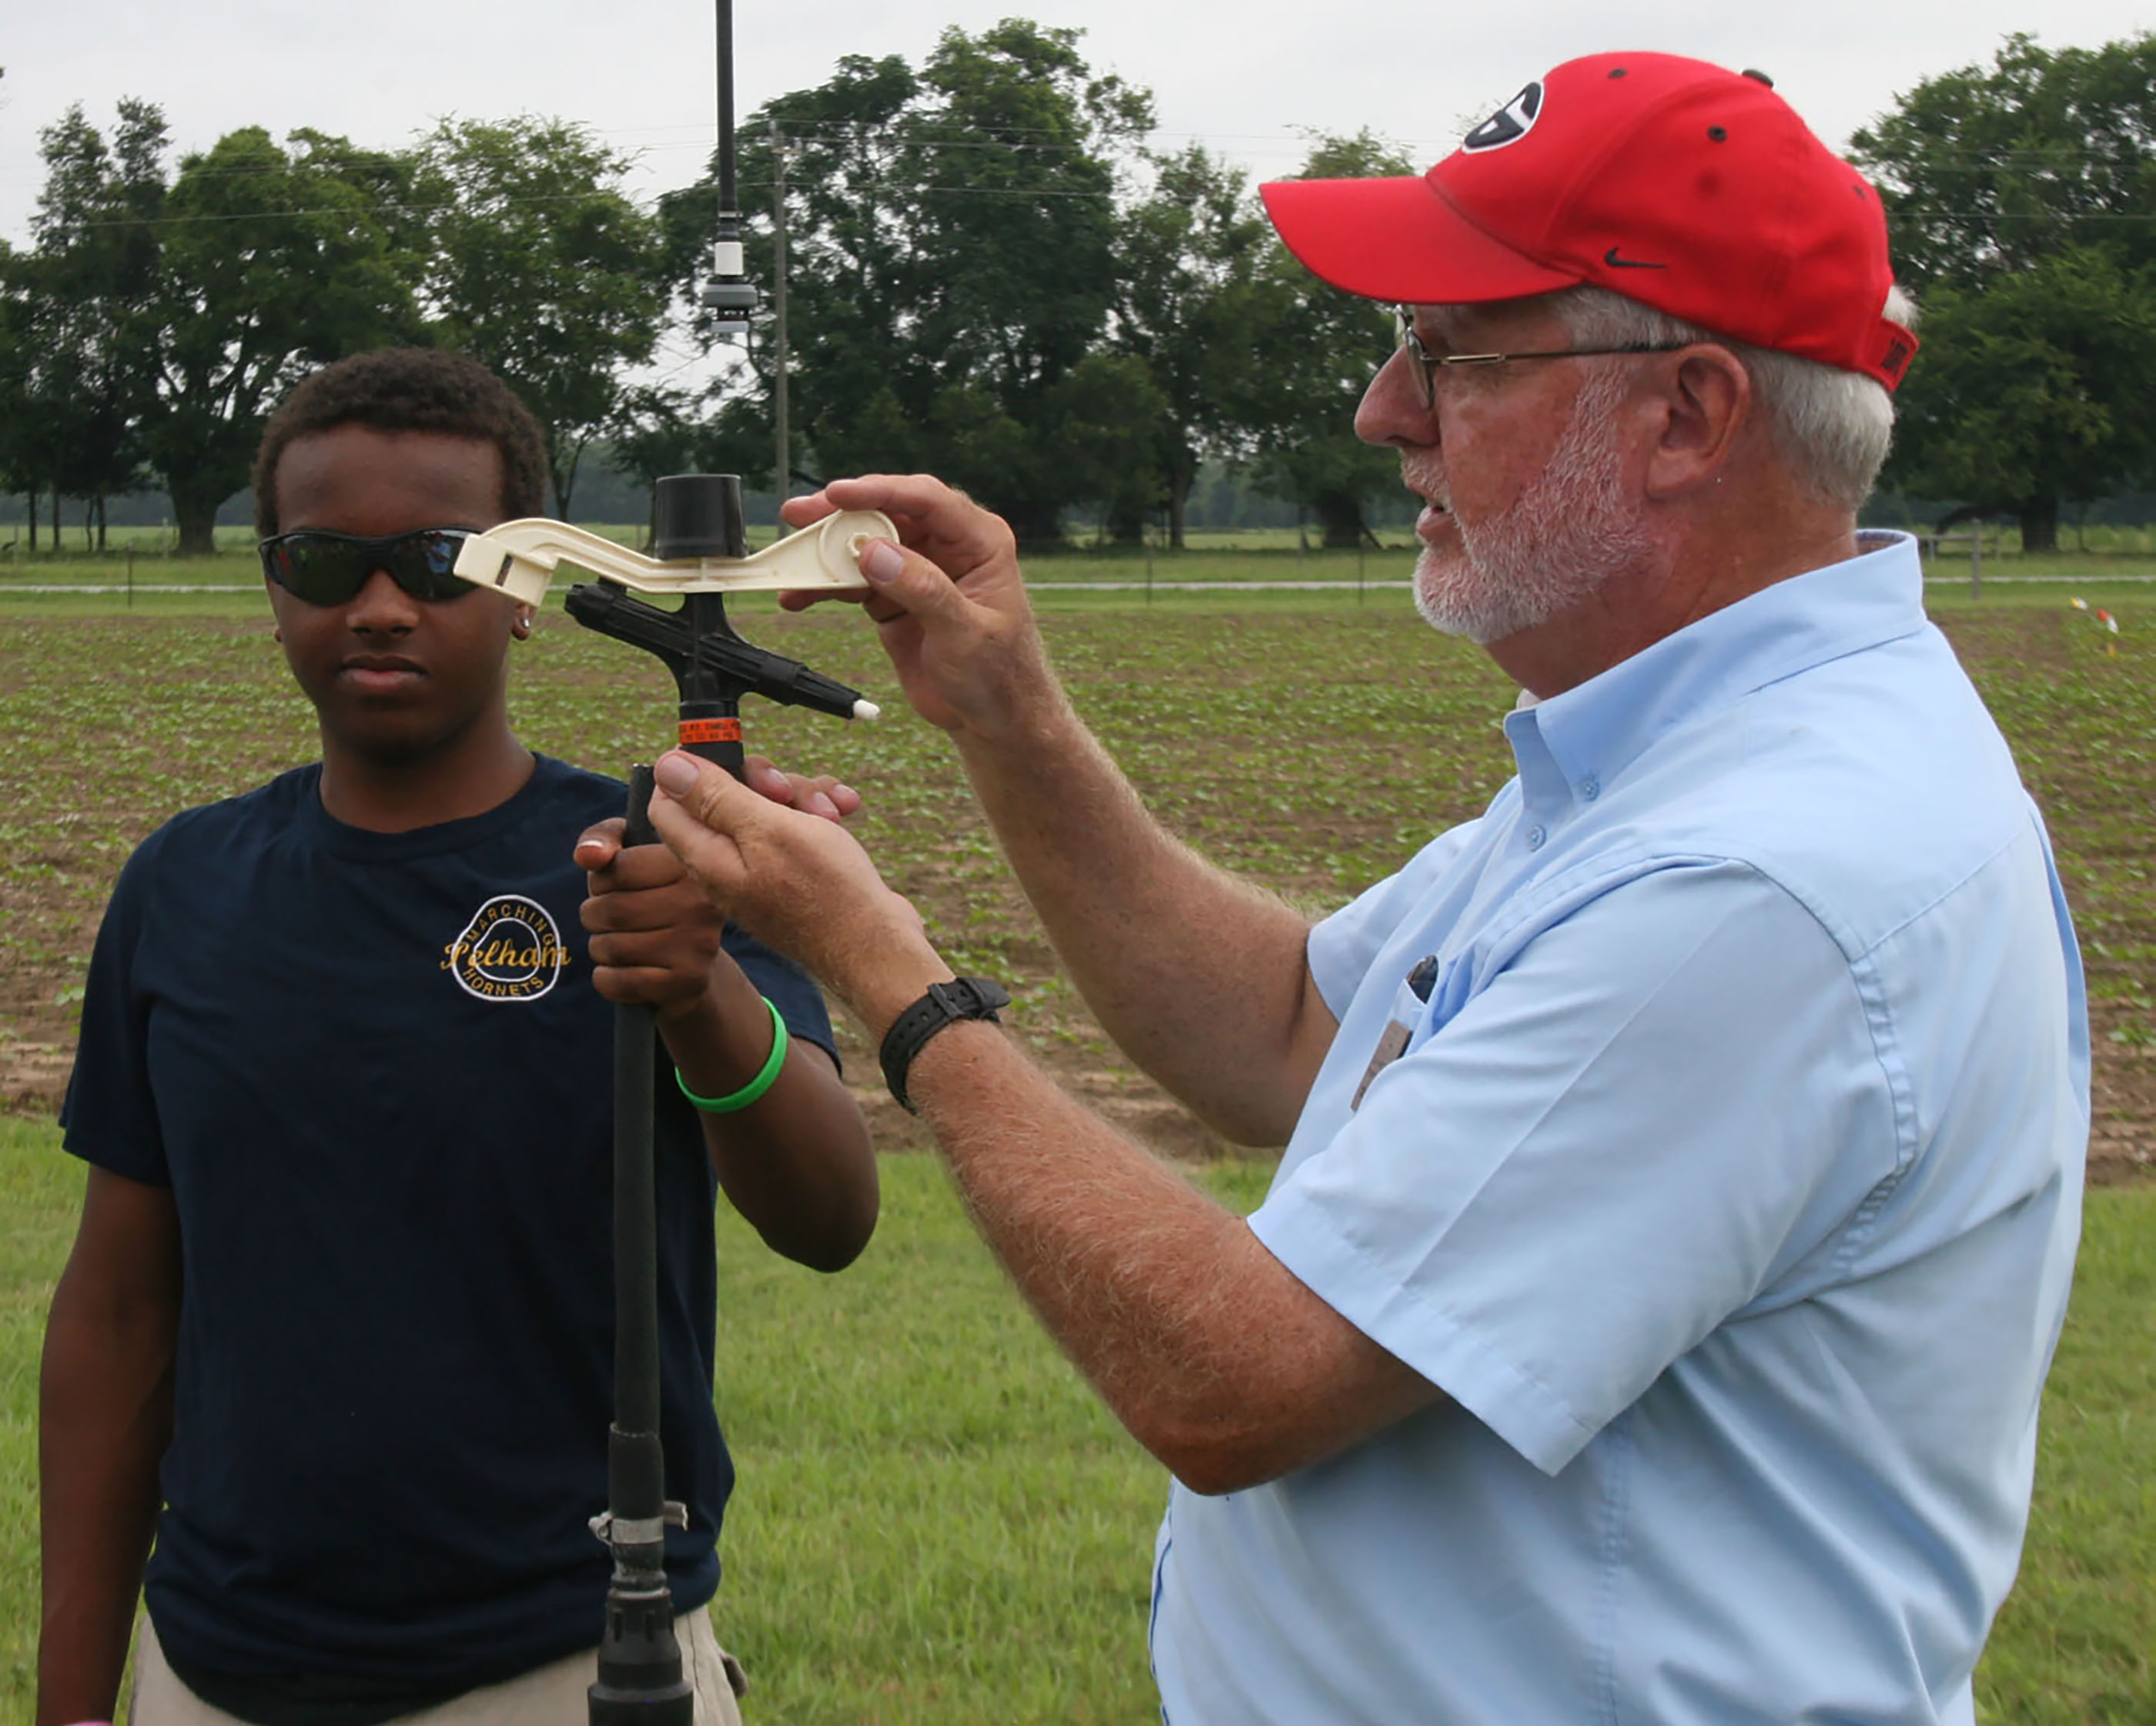 Calvin Perry, superintendent of C.M. Stripling Irrigation Research Park, instructs 4-H campers during the research park's annual 4-H20 camp. On March 14, 2019, the Georgia Water Coalition will host its second annual Clean 13 Celebration at Mason Fine Art in Atlanta where Stripling research park and its staff will be honored during a gala awards ceremony.